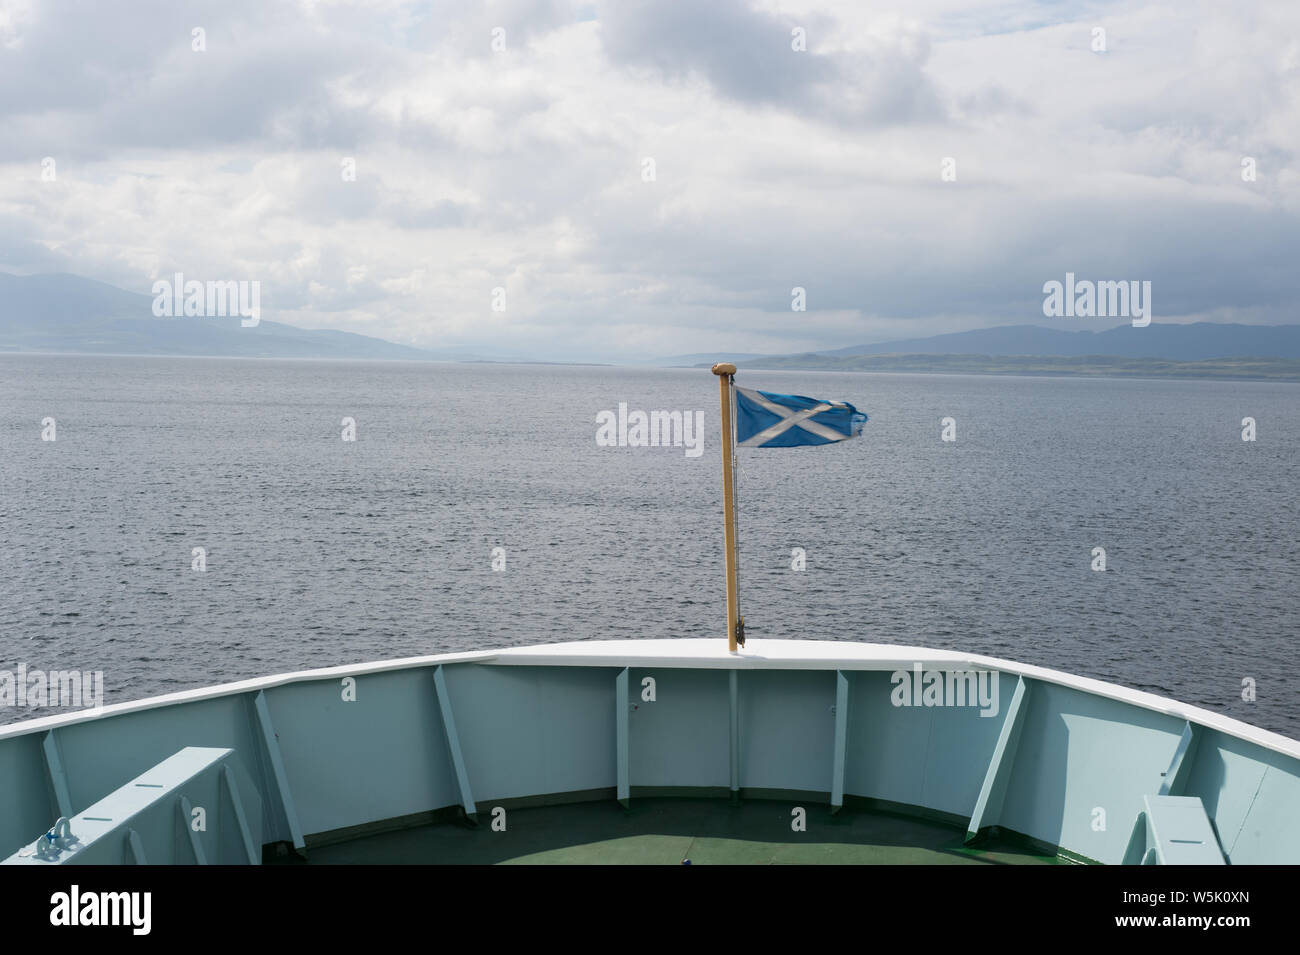 Scottish flag on the bow of a Caledonian Macbrayne ferry leaving the port in Oban, Scotland, travelling towards the Isle of Islay. Stock Photo